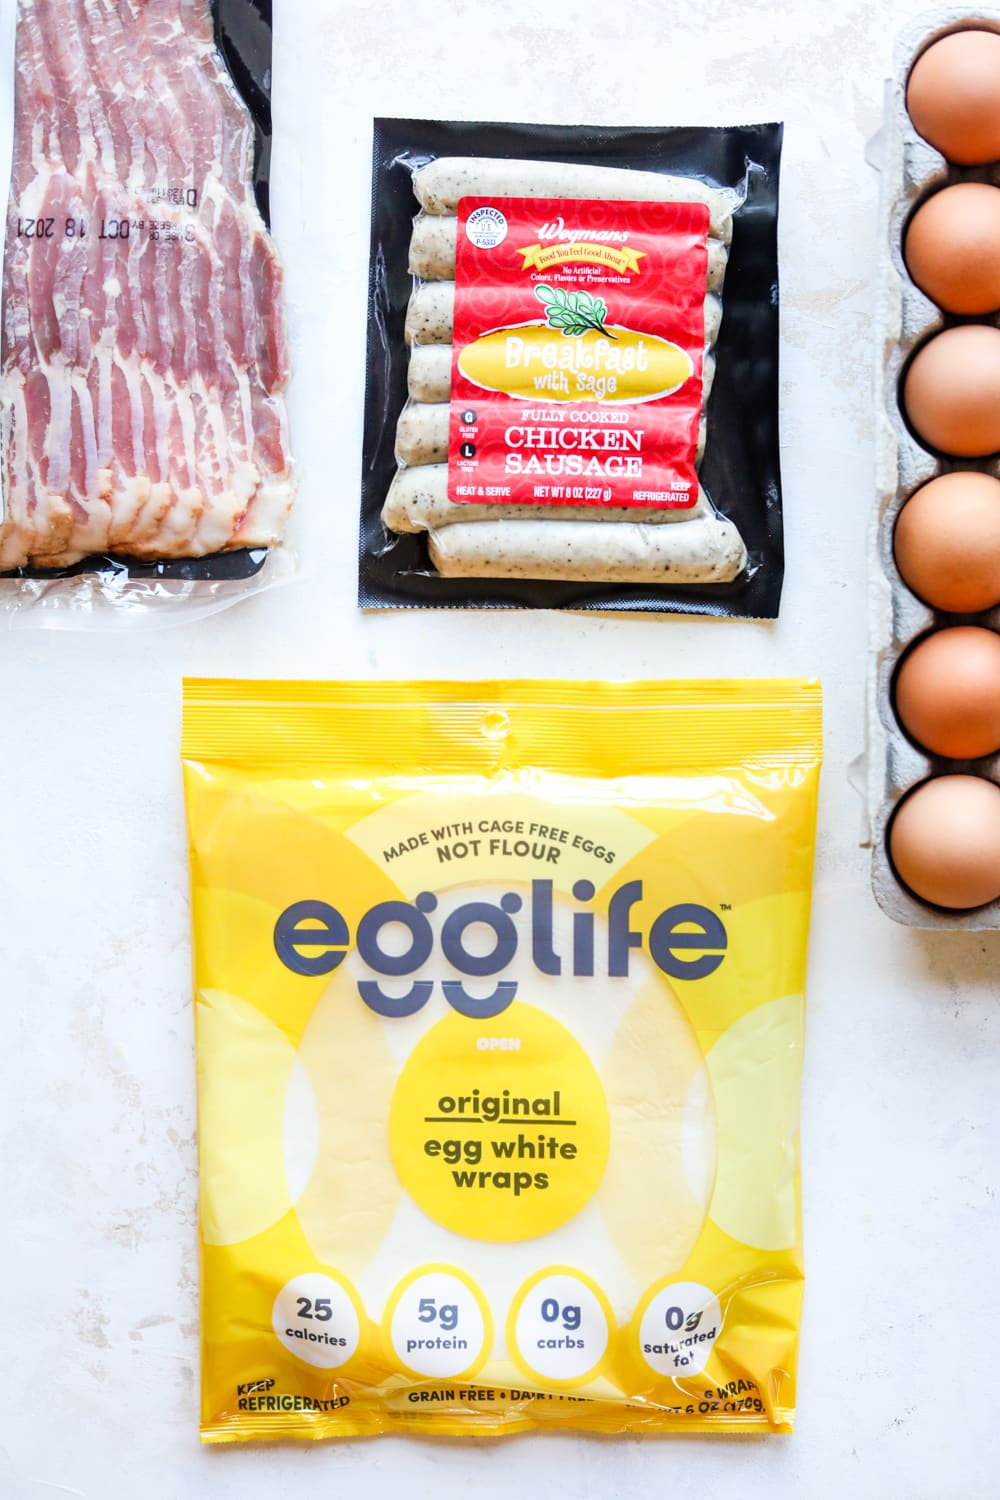 Egg wraps, breakfast sausage, eggs, and bacon on a white table. The ingredients are still in their packages & containers.